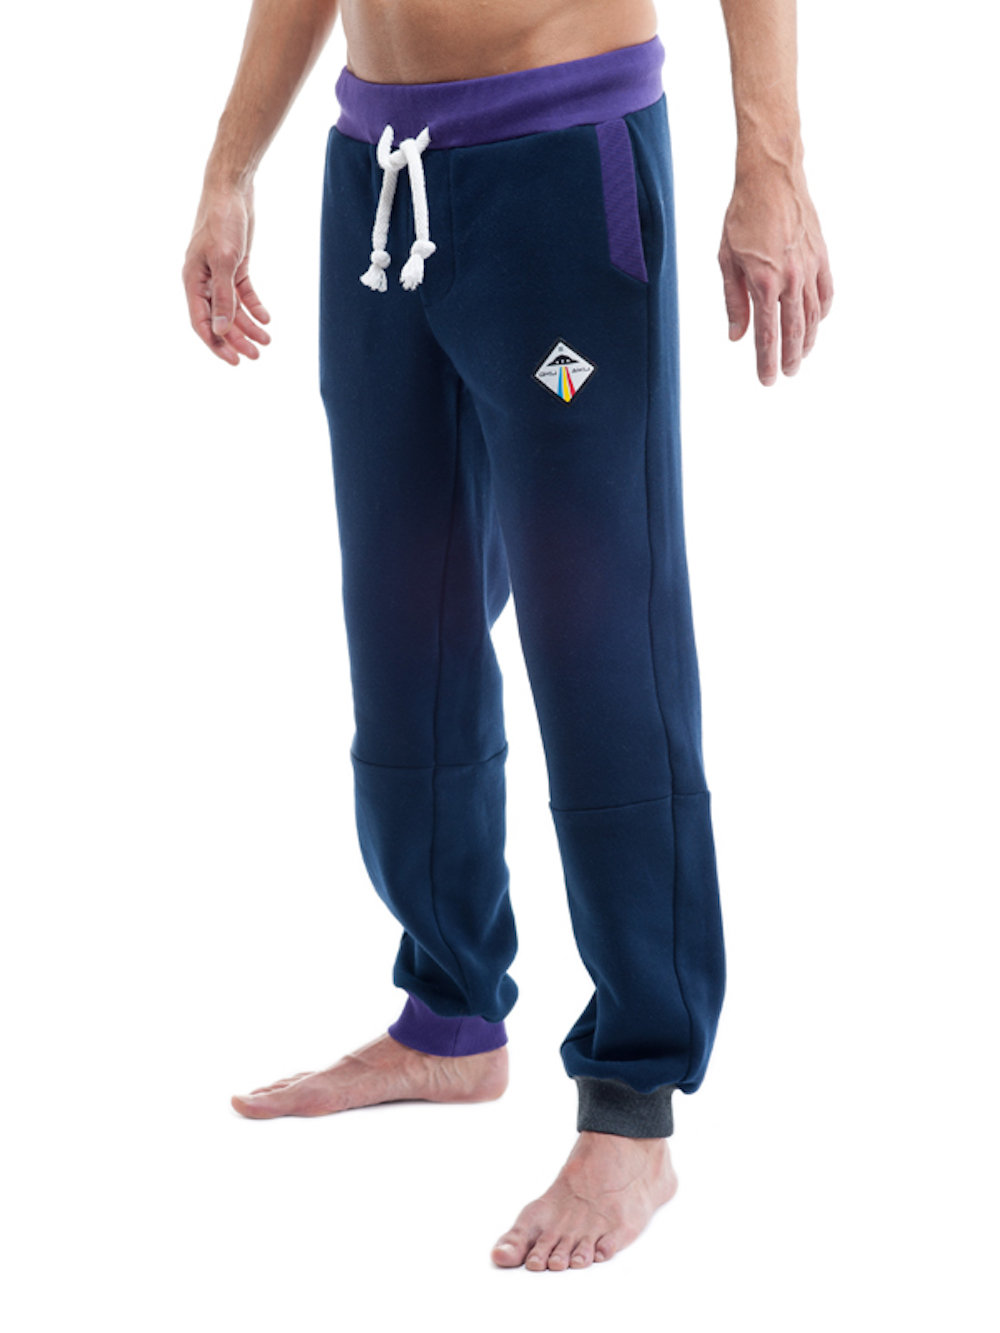 Serpens Sweatpants (Navy Blue) - Okuaku